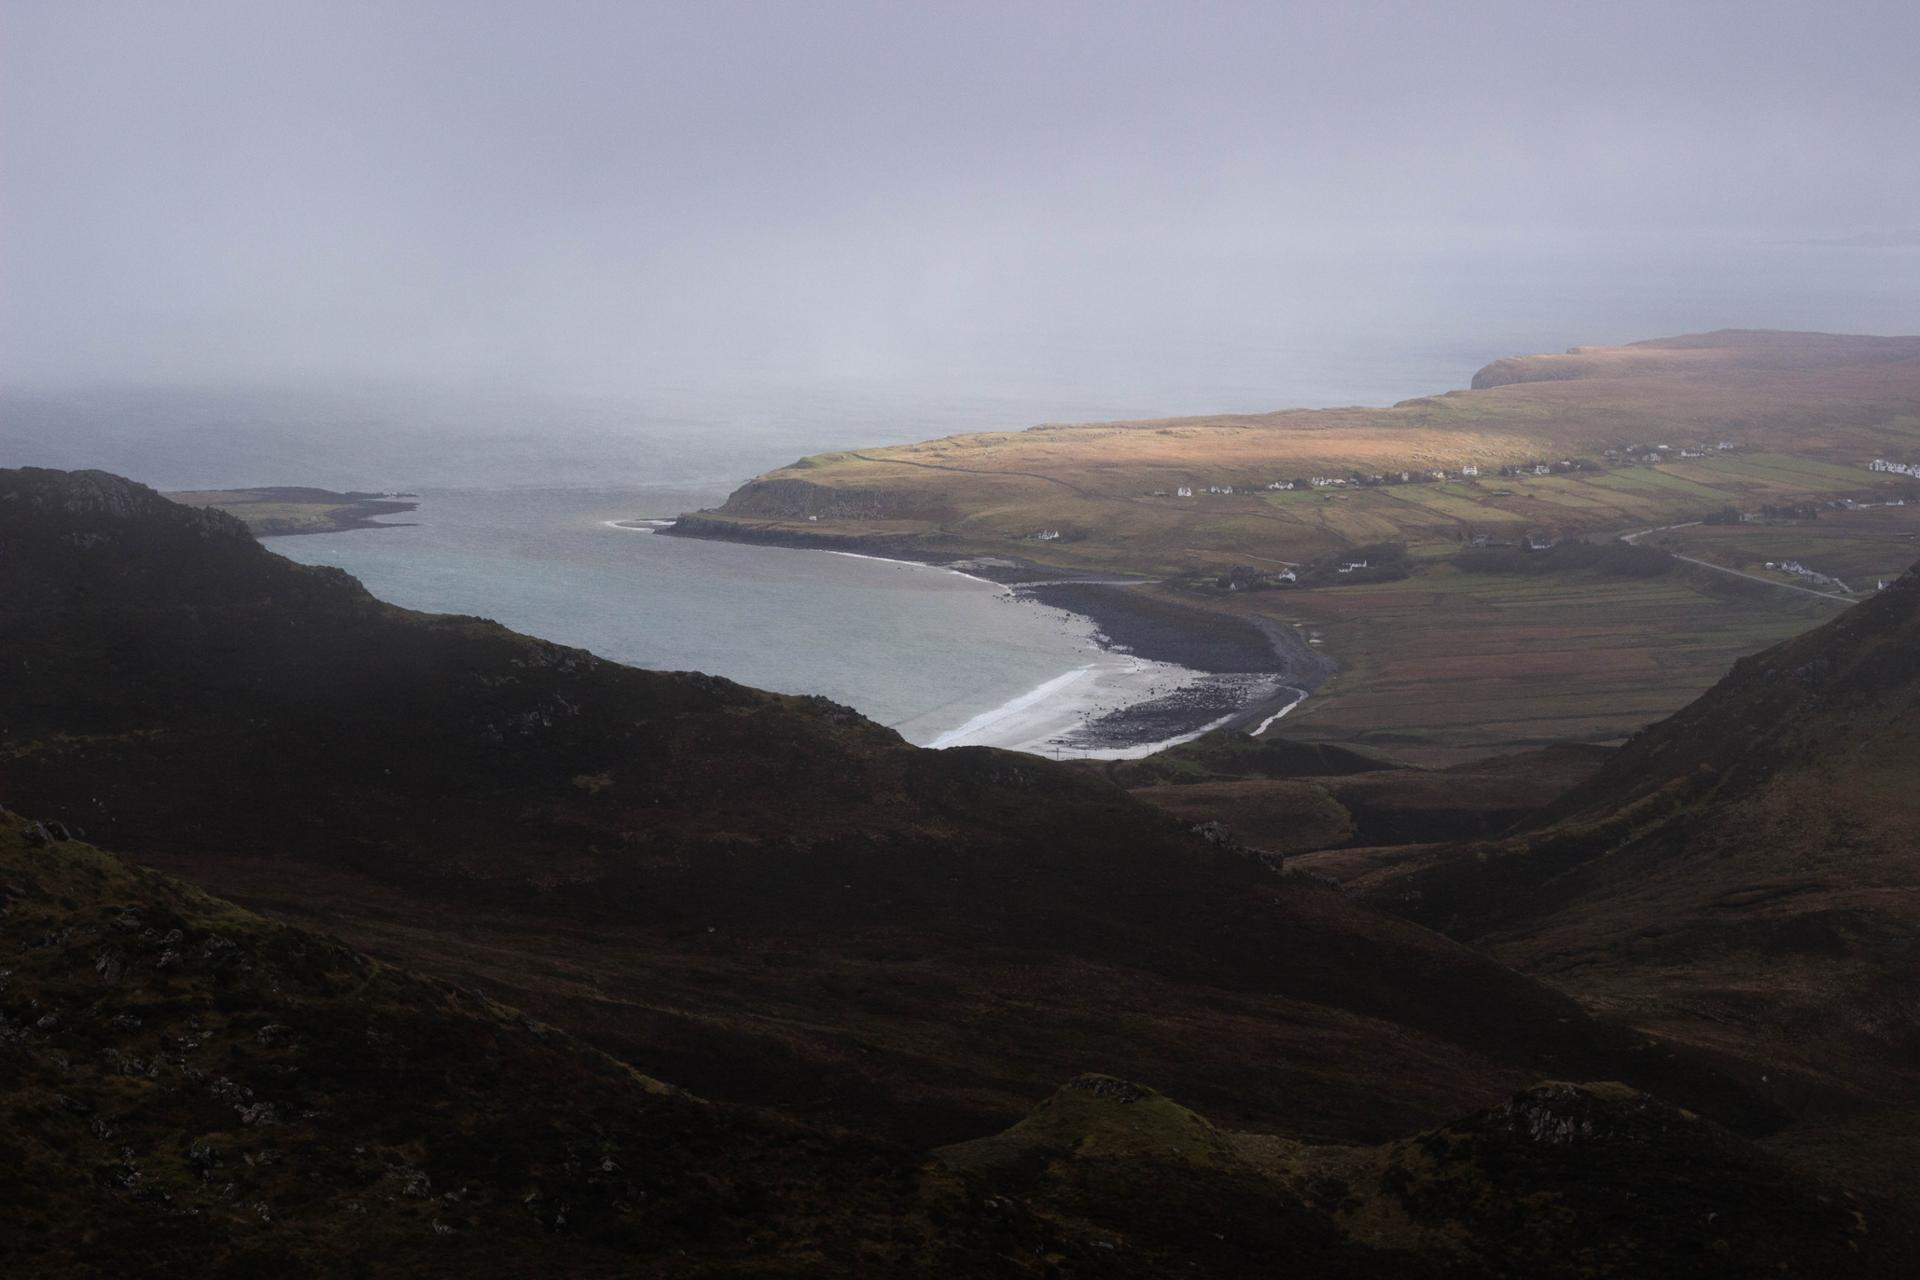 View from the Quiraing Walk